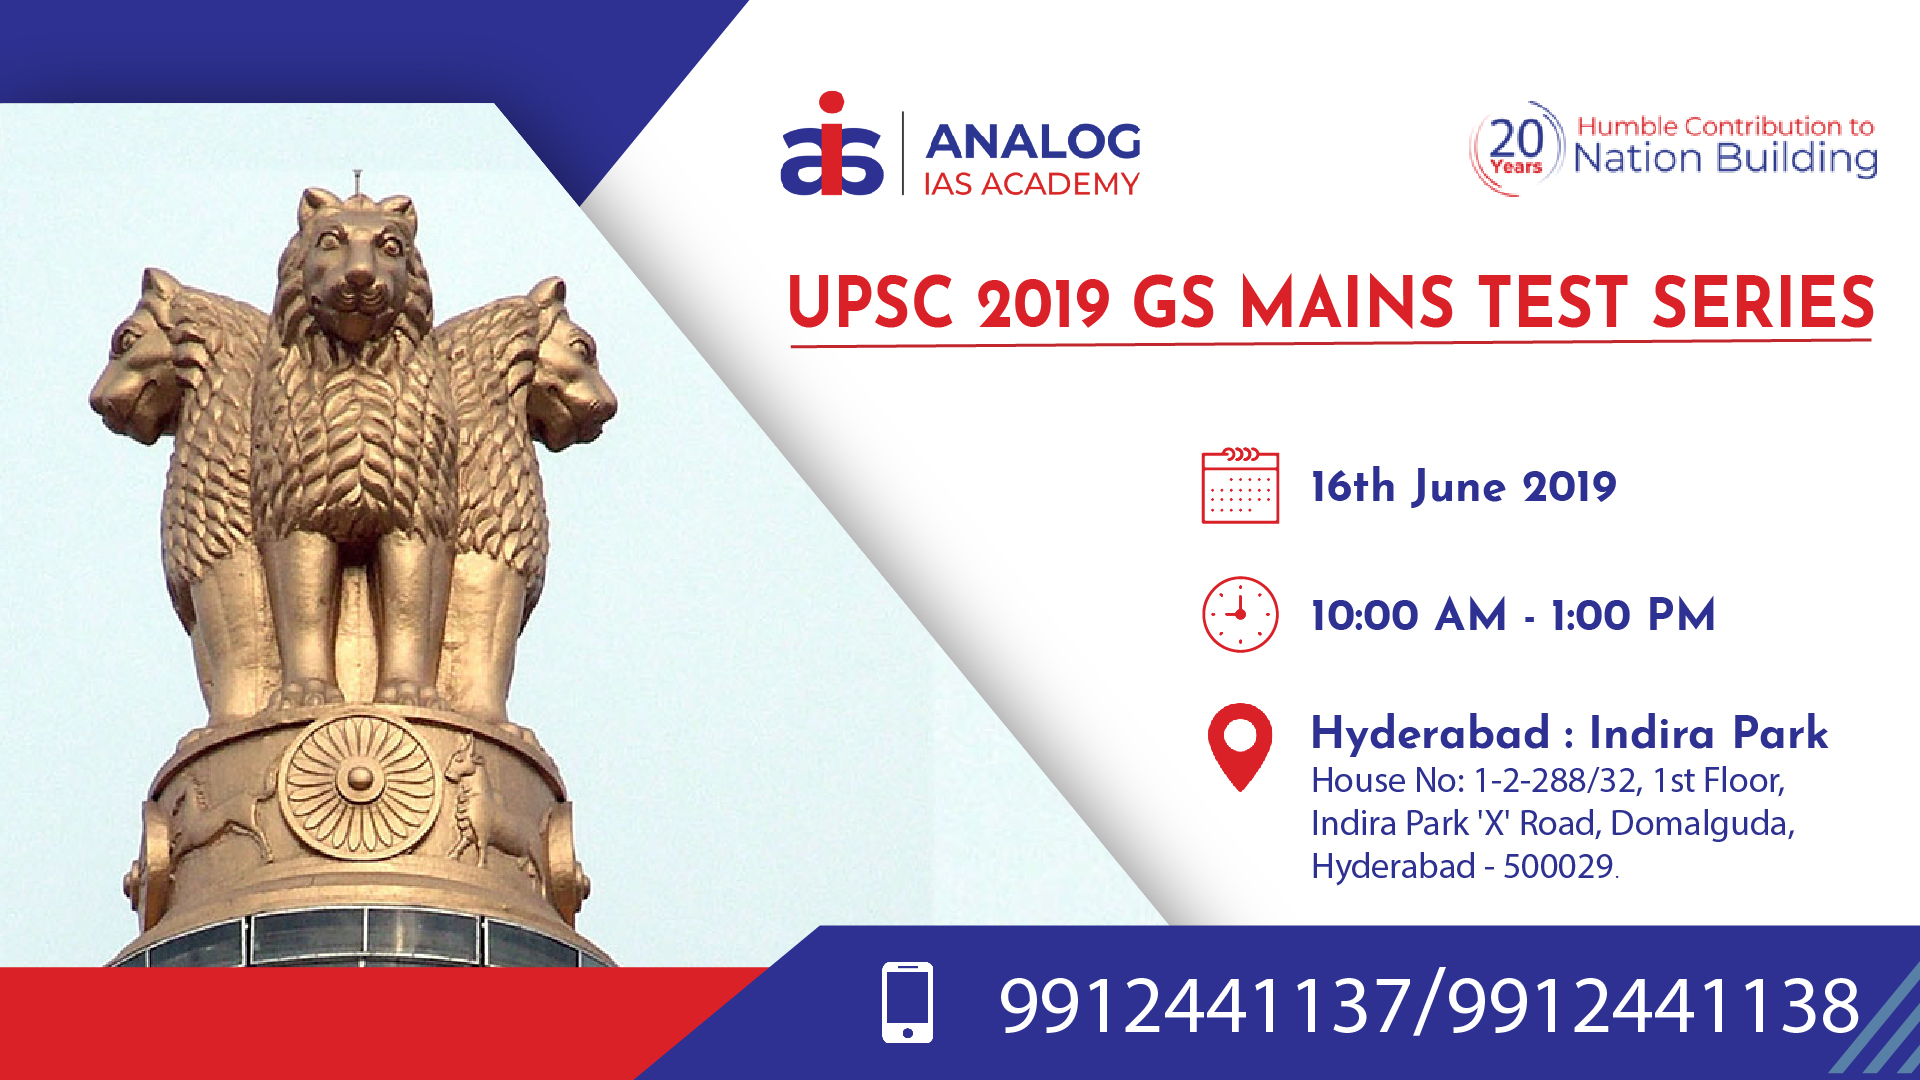 UPSC 2019 GS-Test Series on 16th June 2019